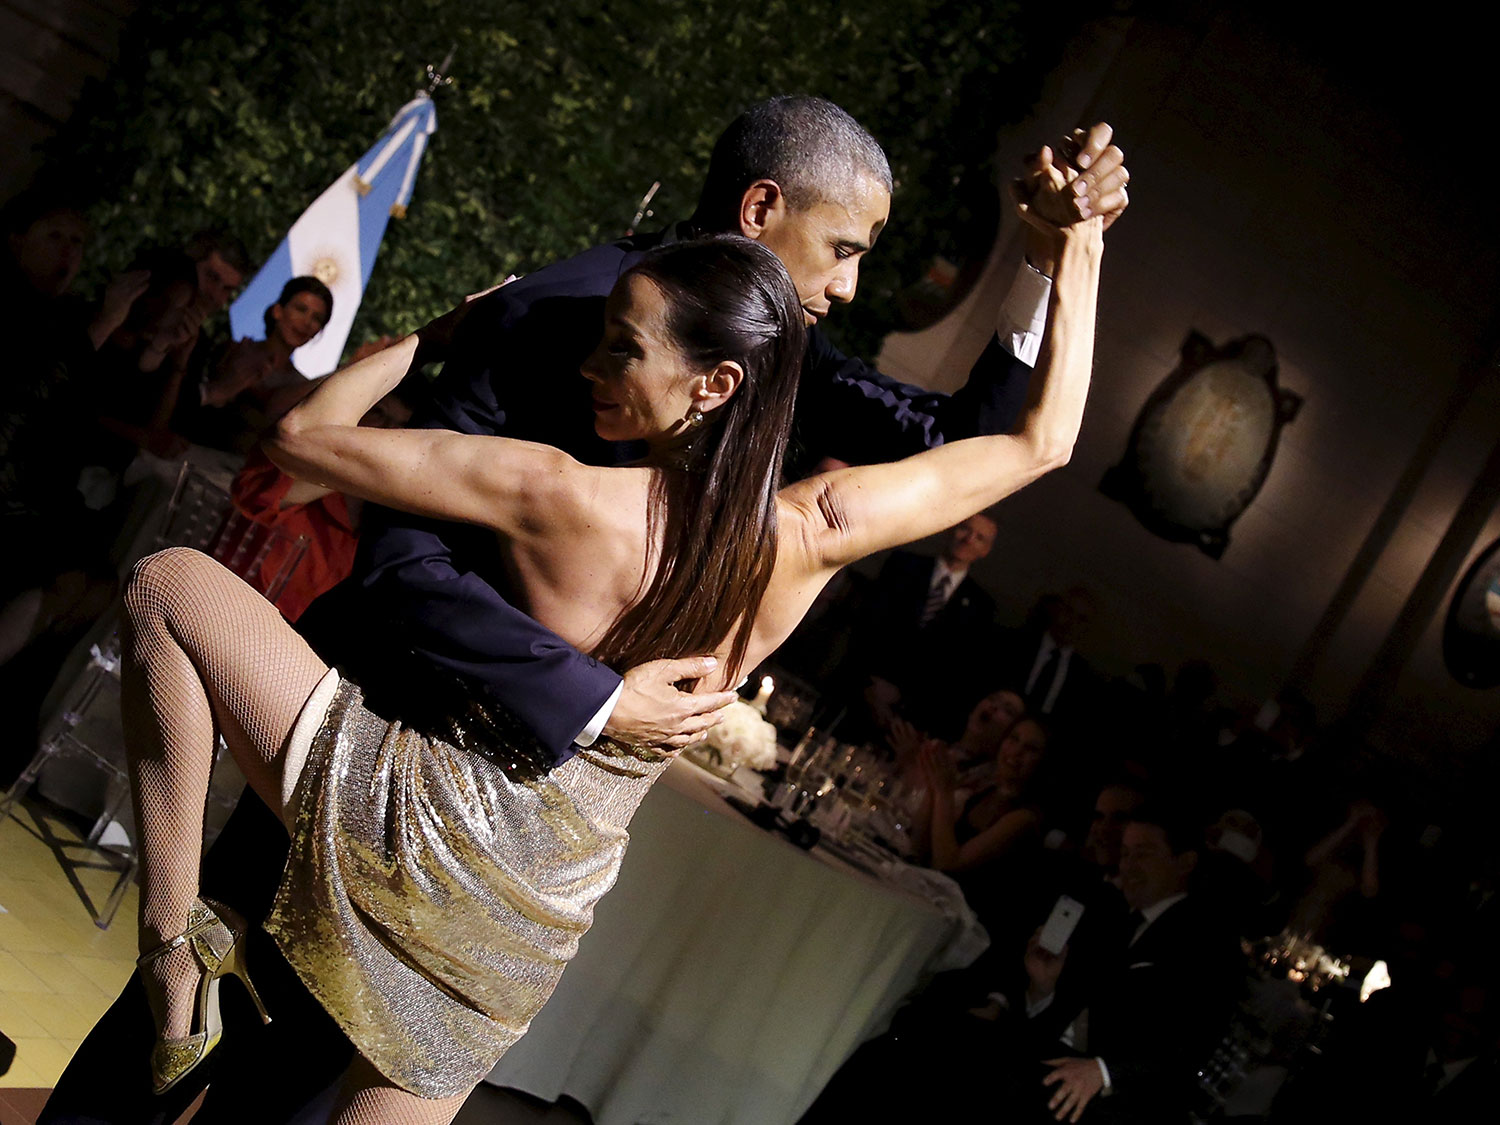 7 Hilarious Thoughts Obama Probably Had While Dancing the Tango in Argentina